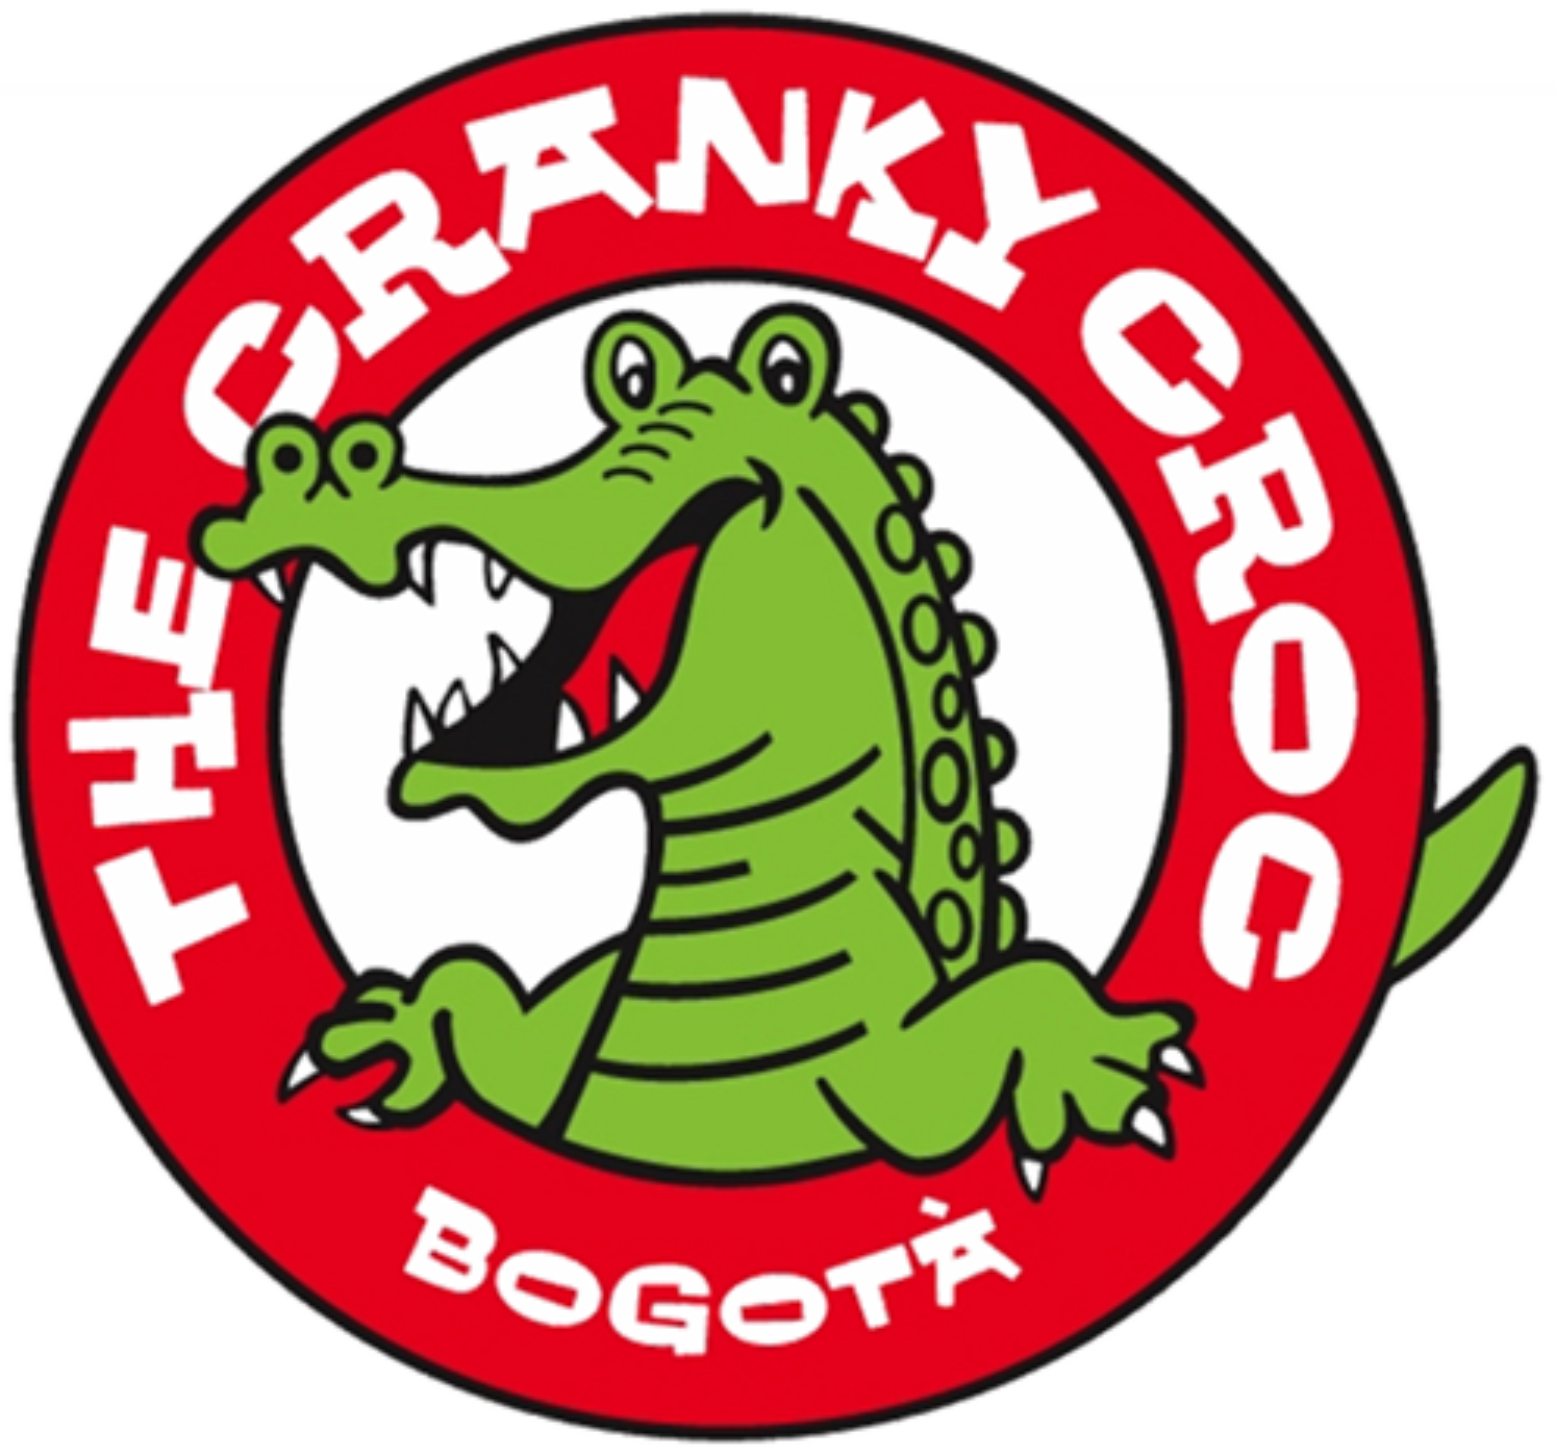 The Cranky Croc Hostel